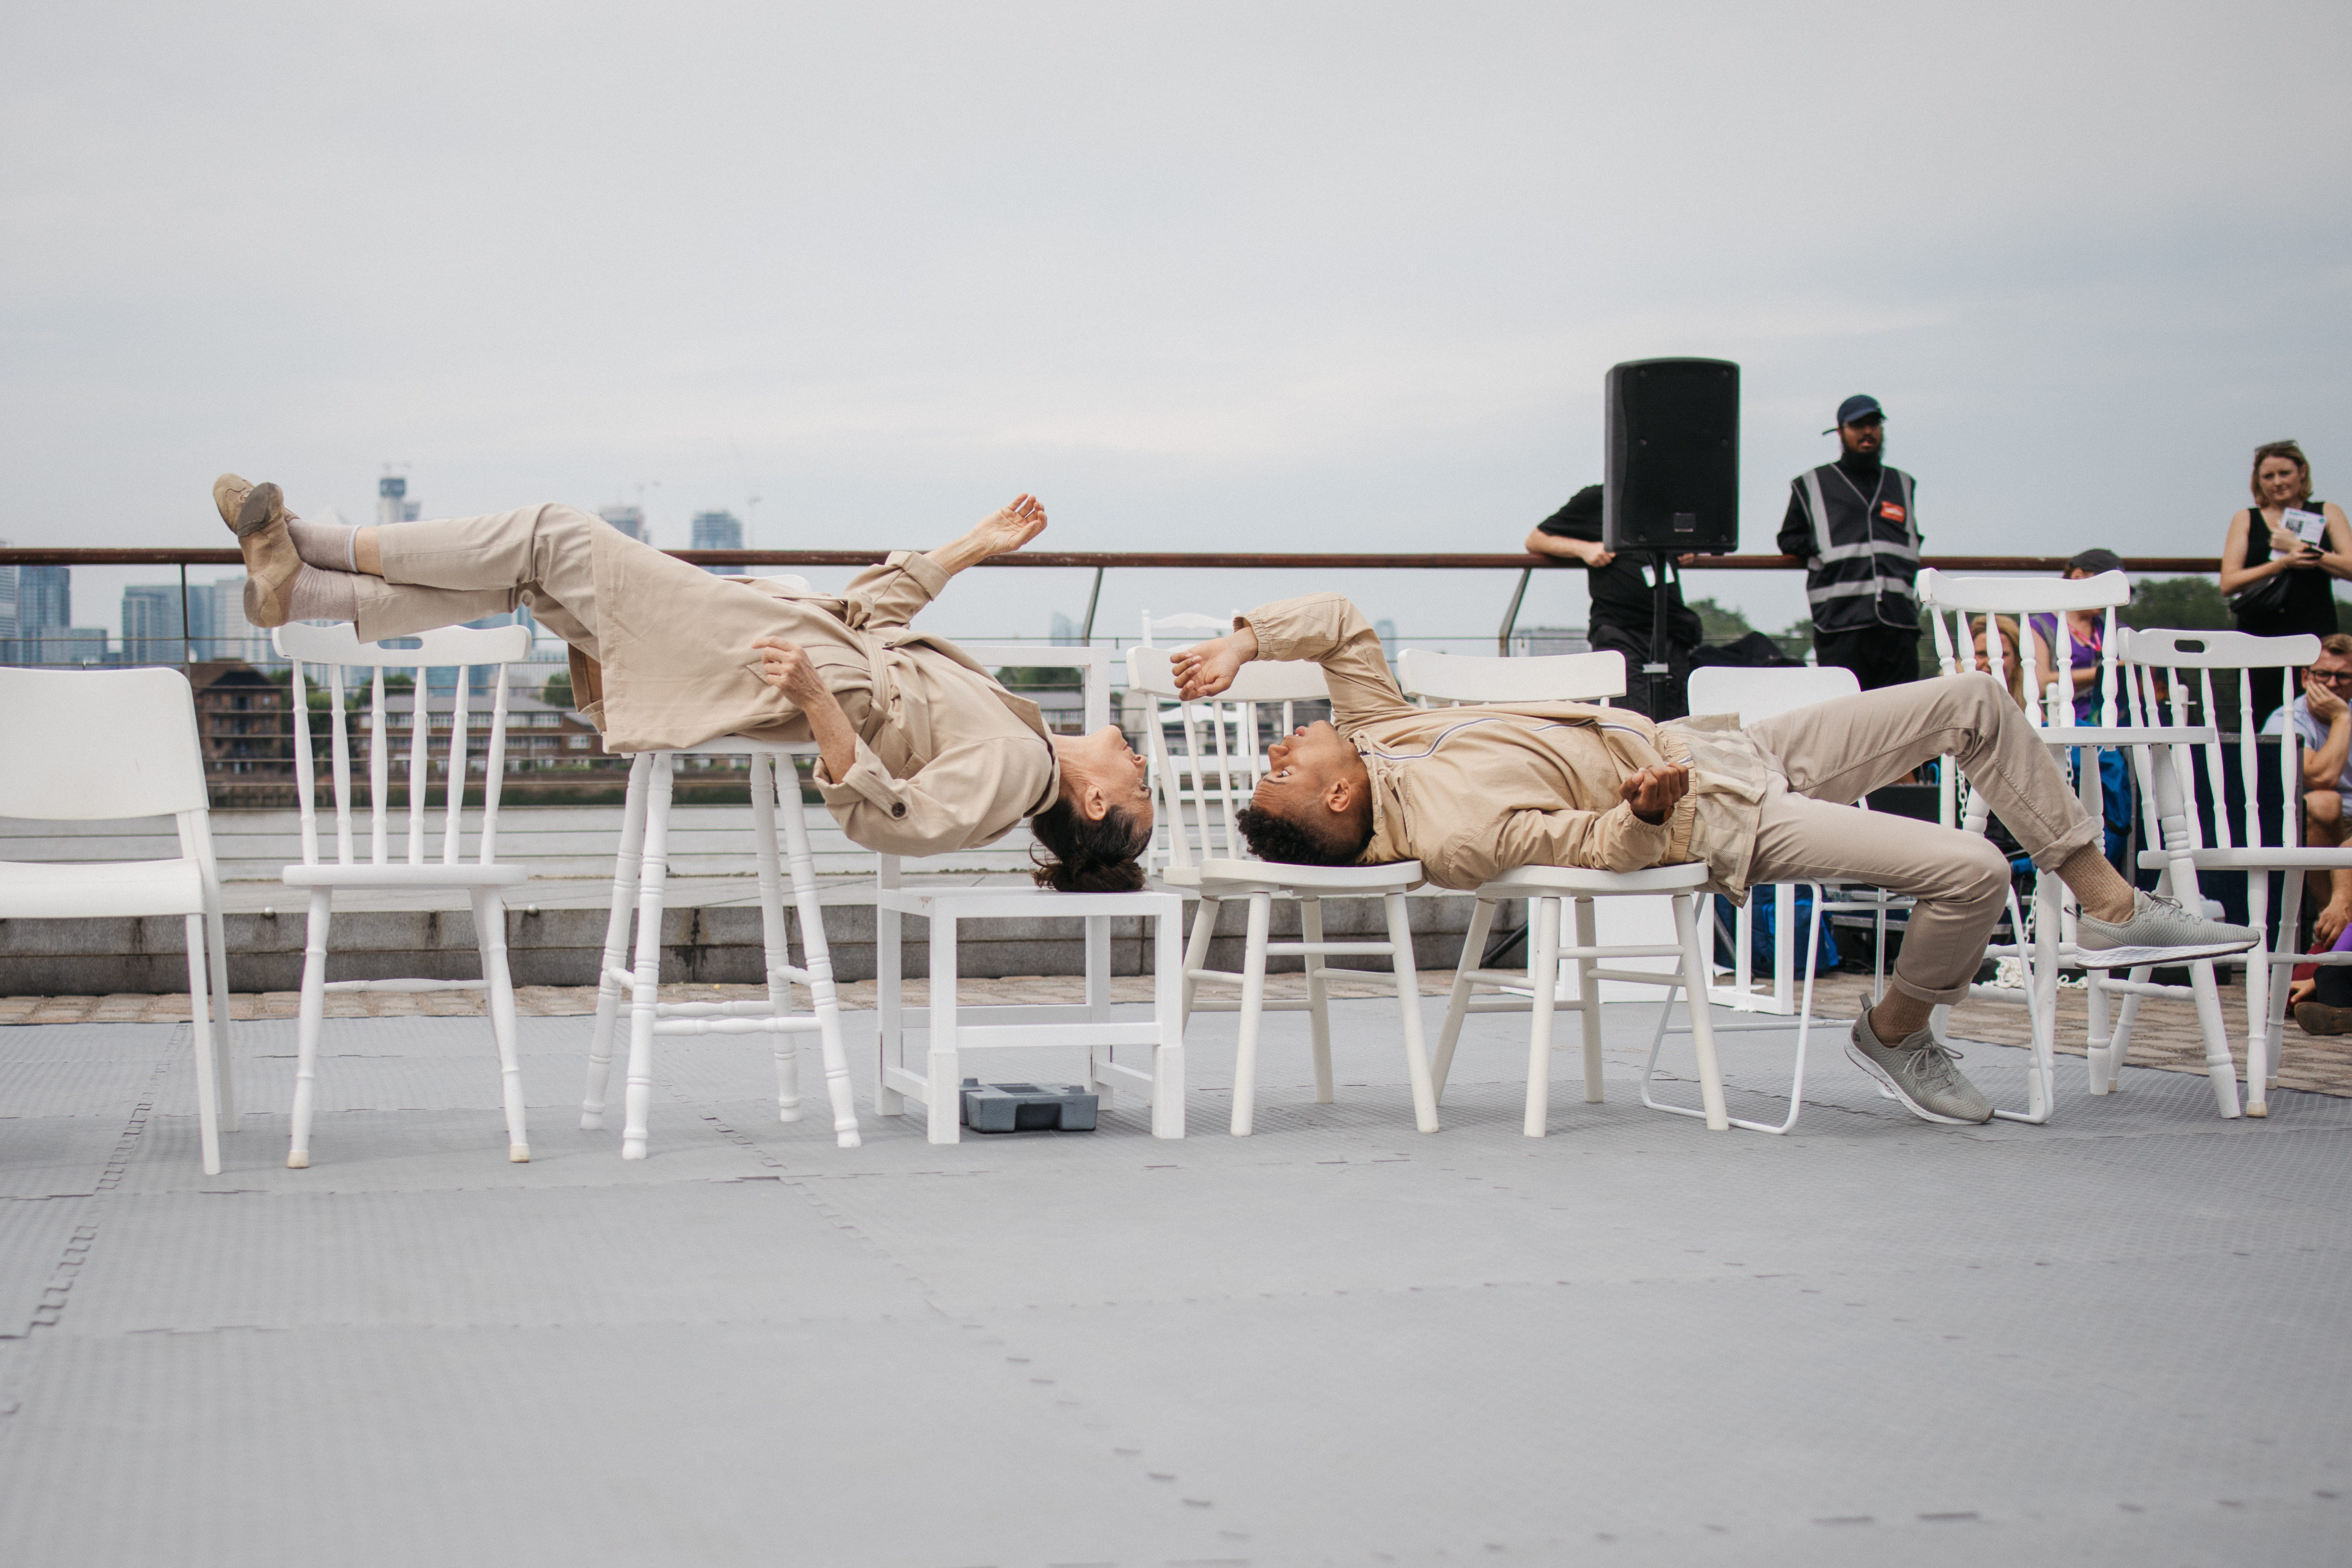 Two performers lie back on chairs and nearly touch hands.